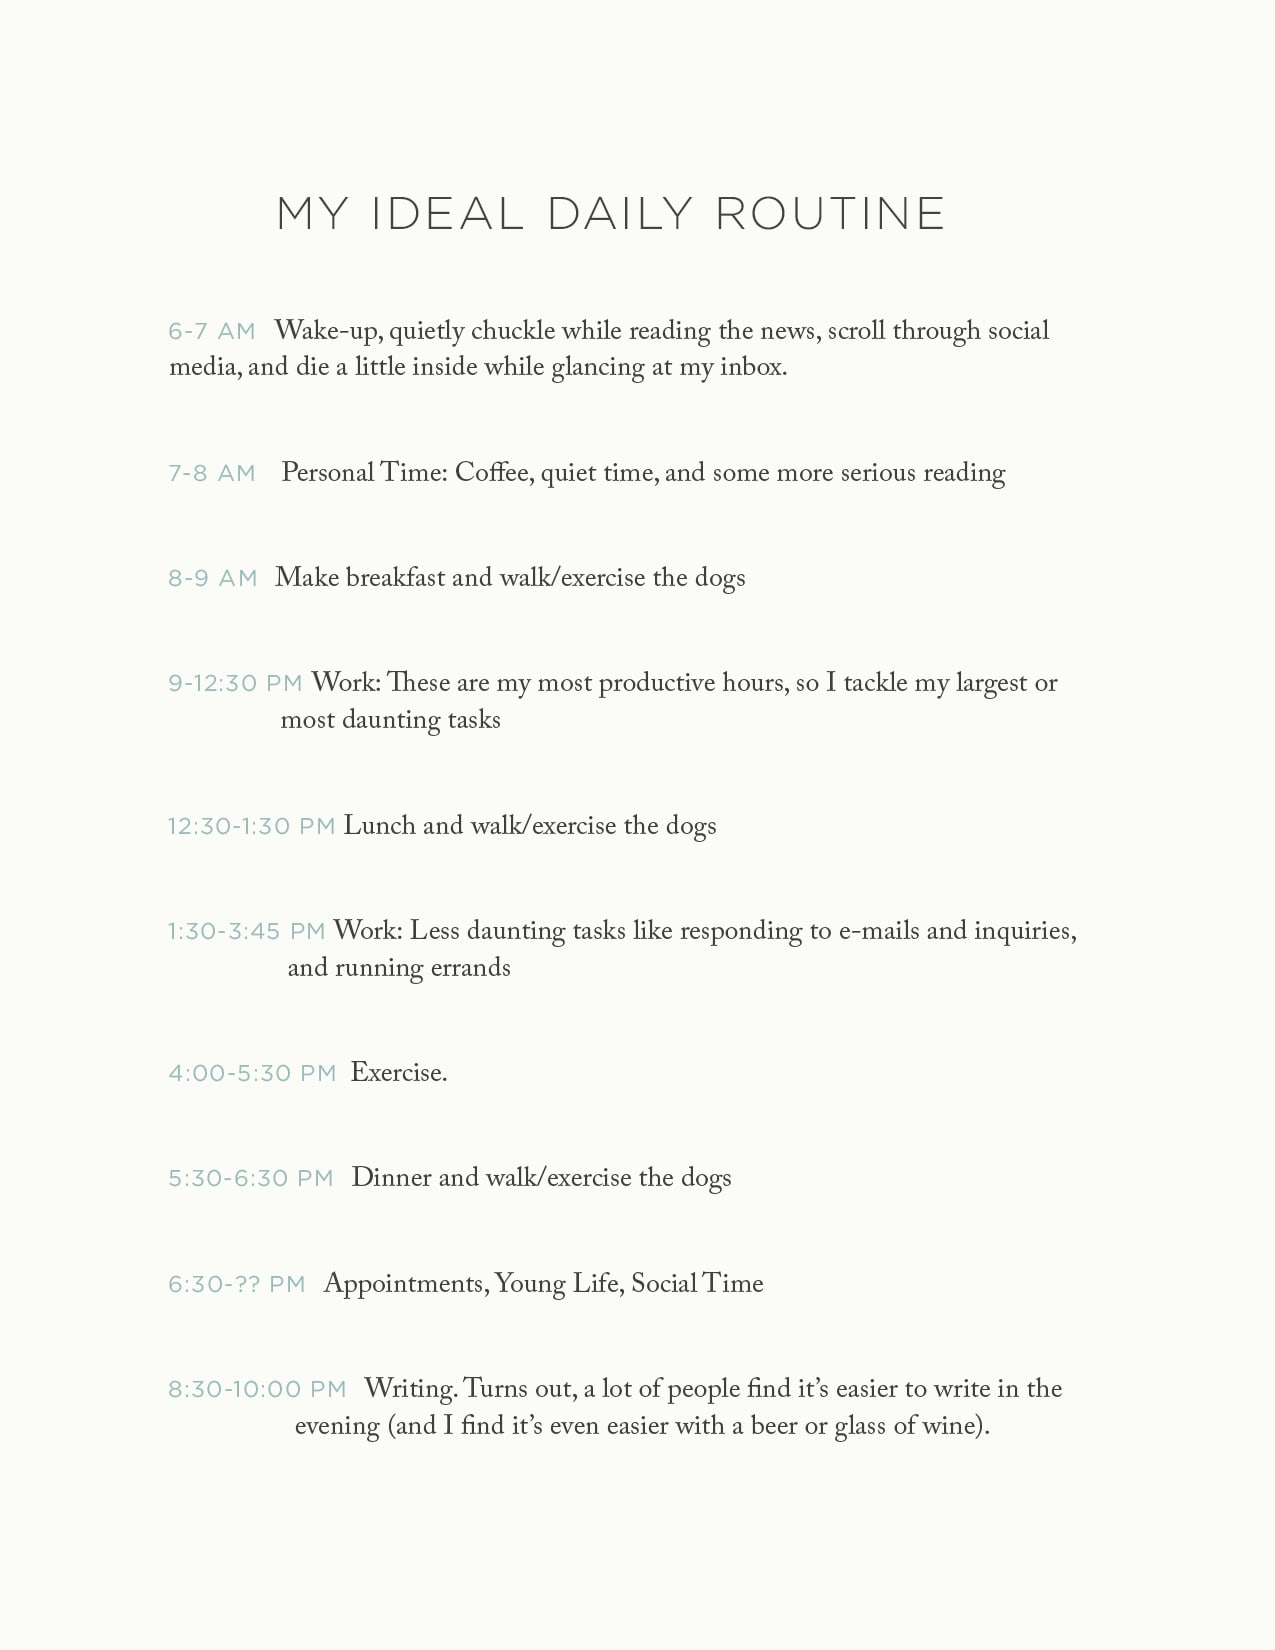 Plan your ideal workday with Davey from the Rising Tide Society